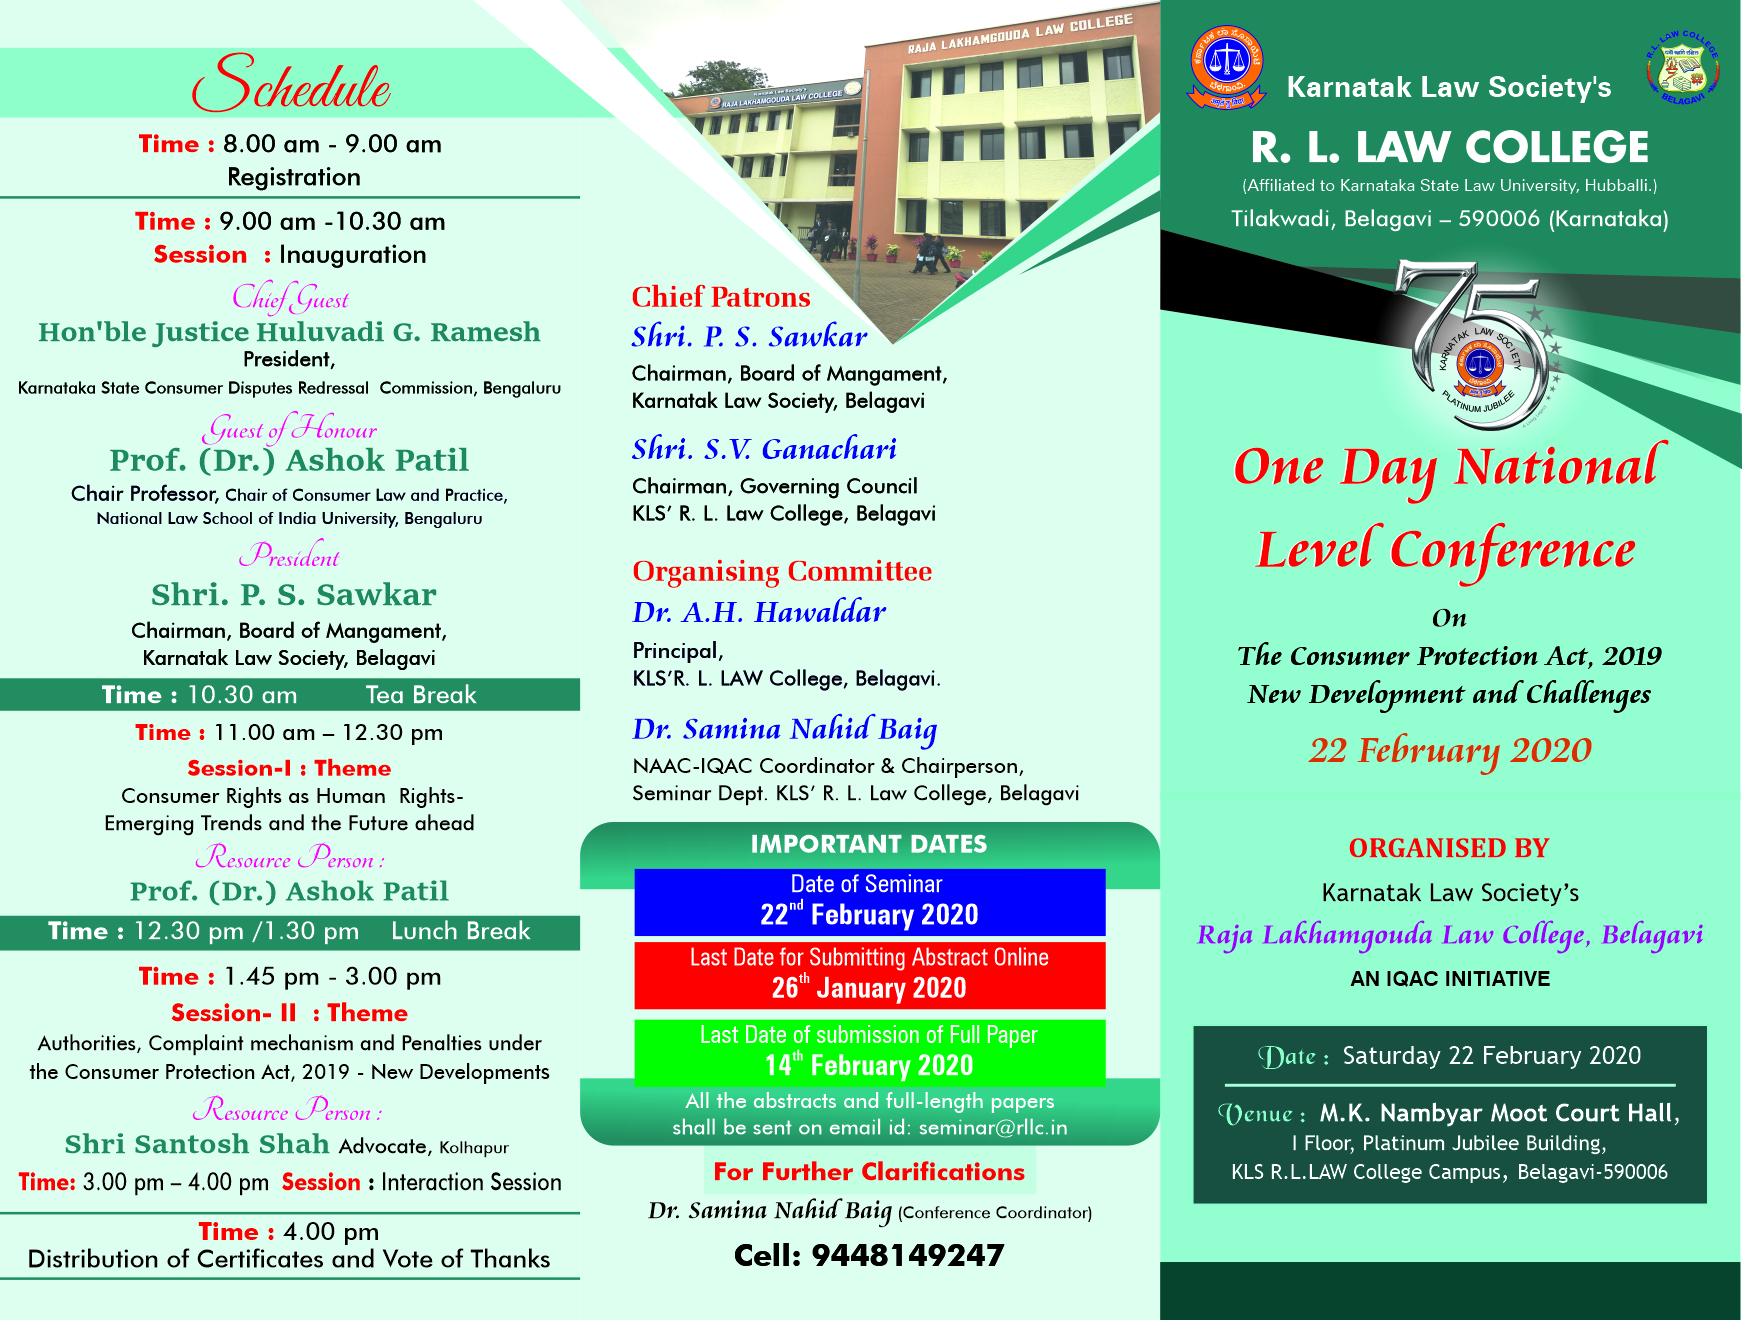 Conference on Consumer Protection Act 2019 at Karnatak Law Society's R.L. Law College, Belagavi